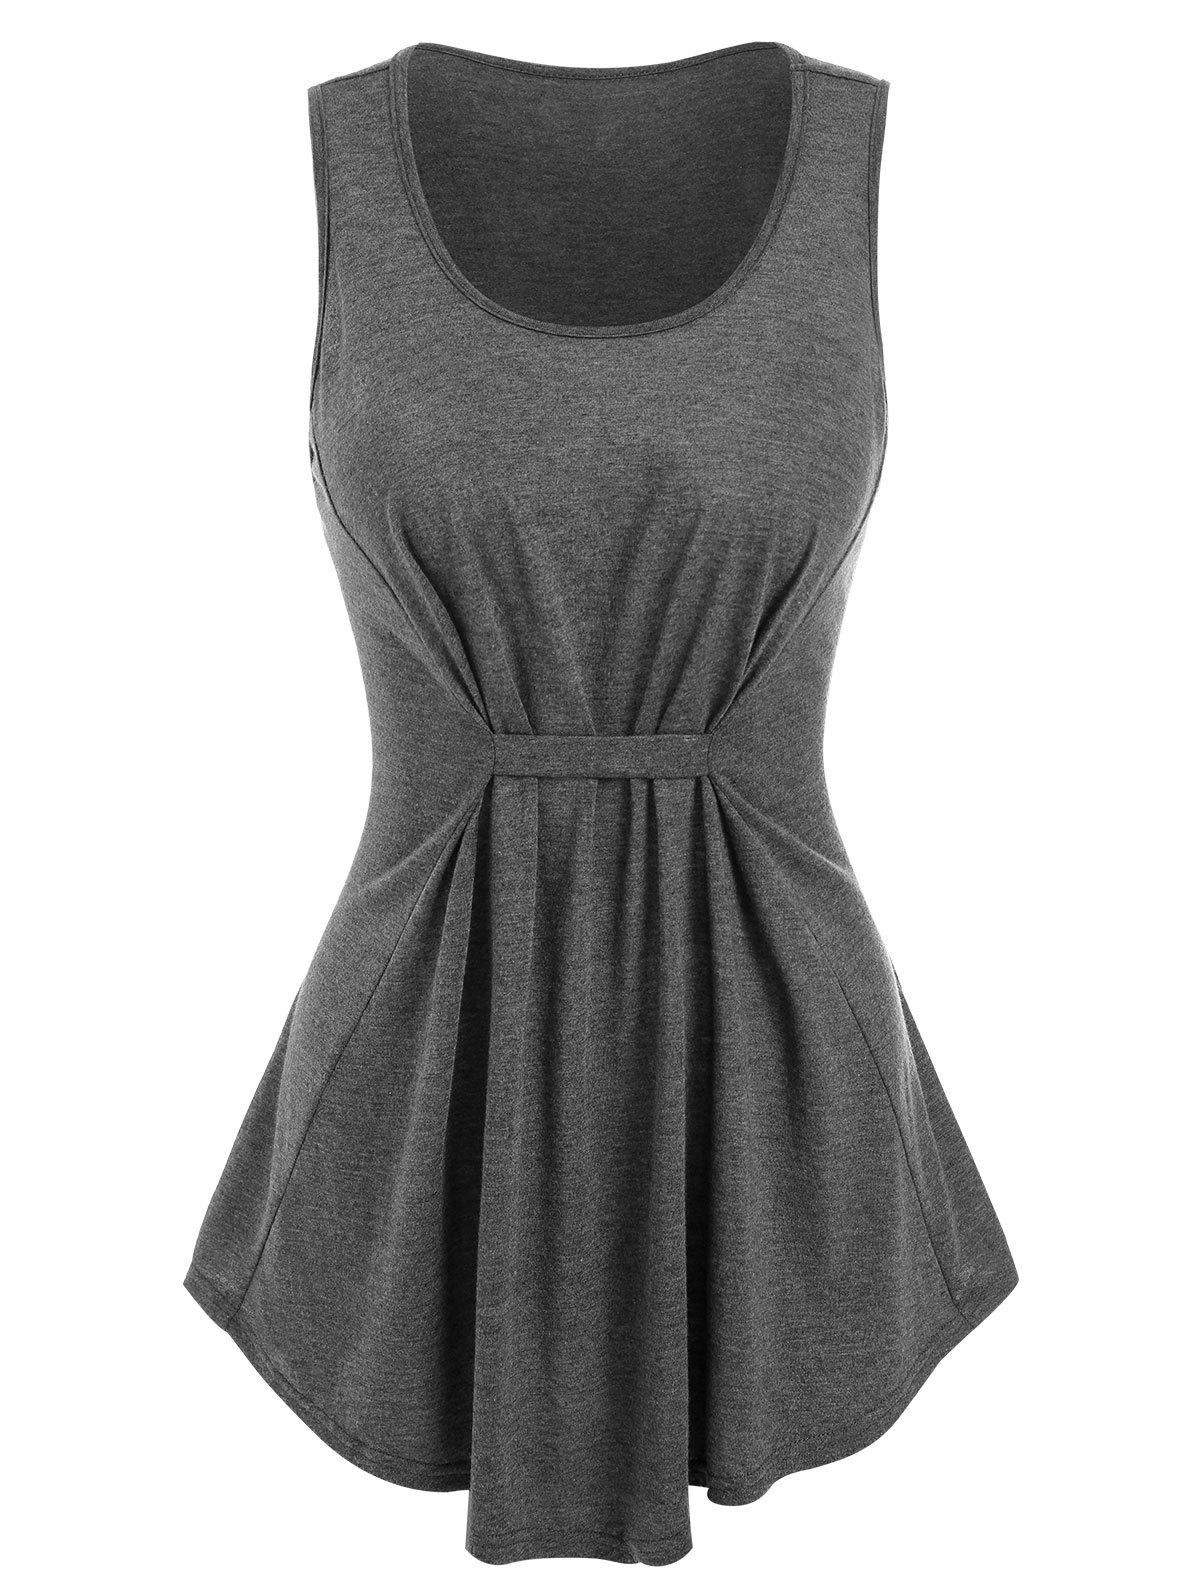 Fancy Gathered Heathered Tank Top